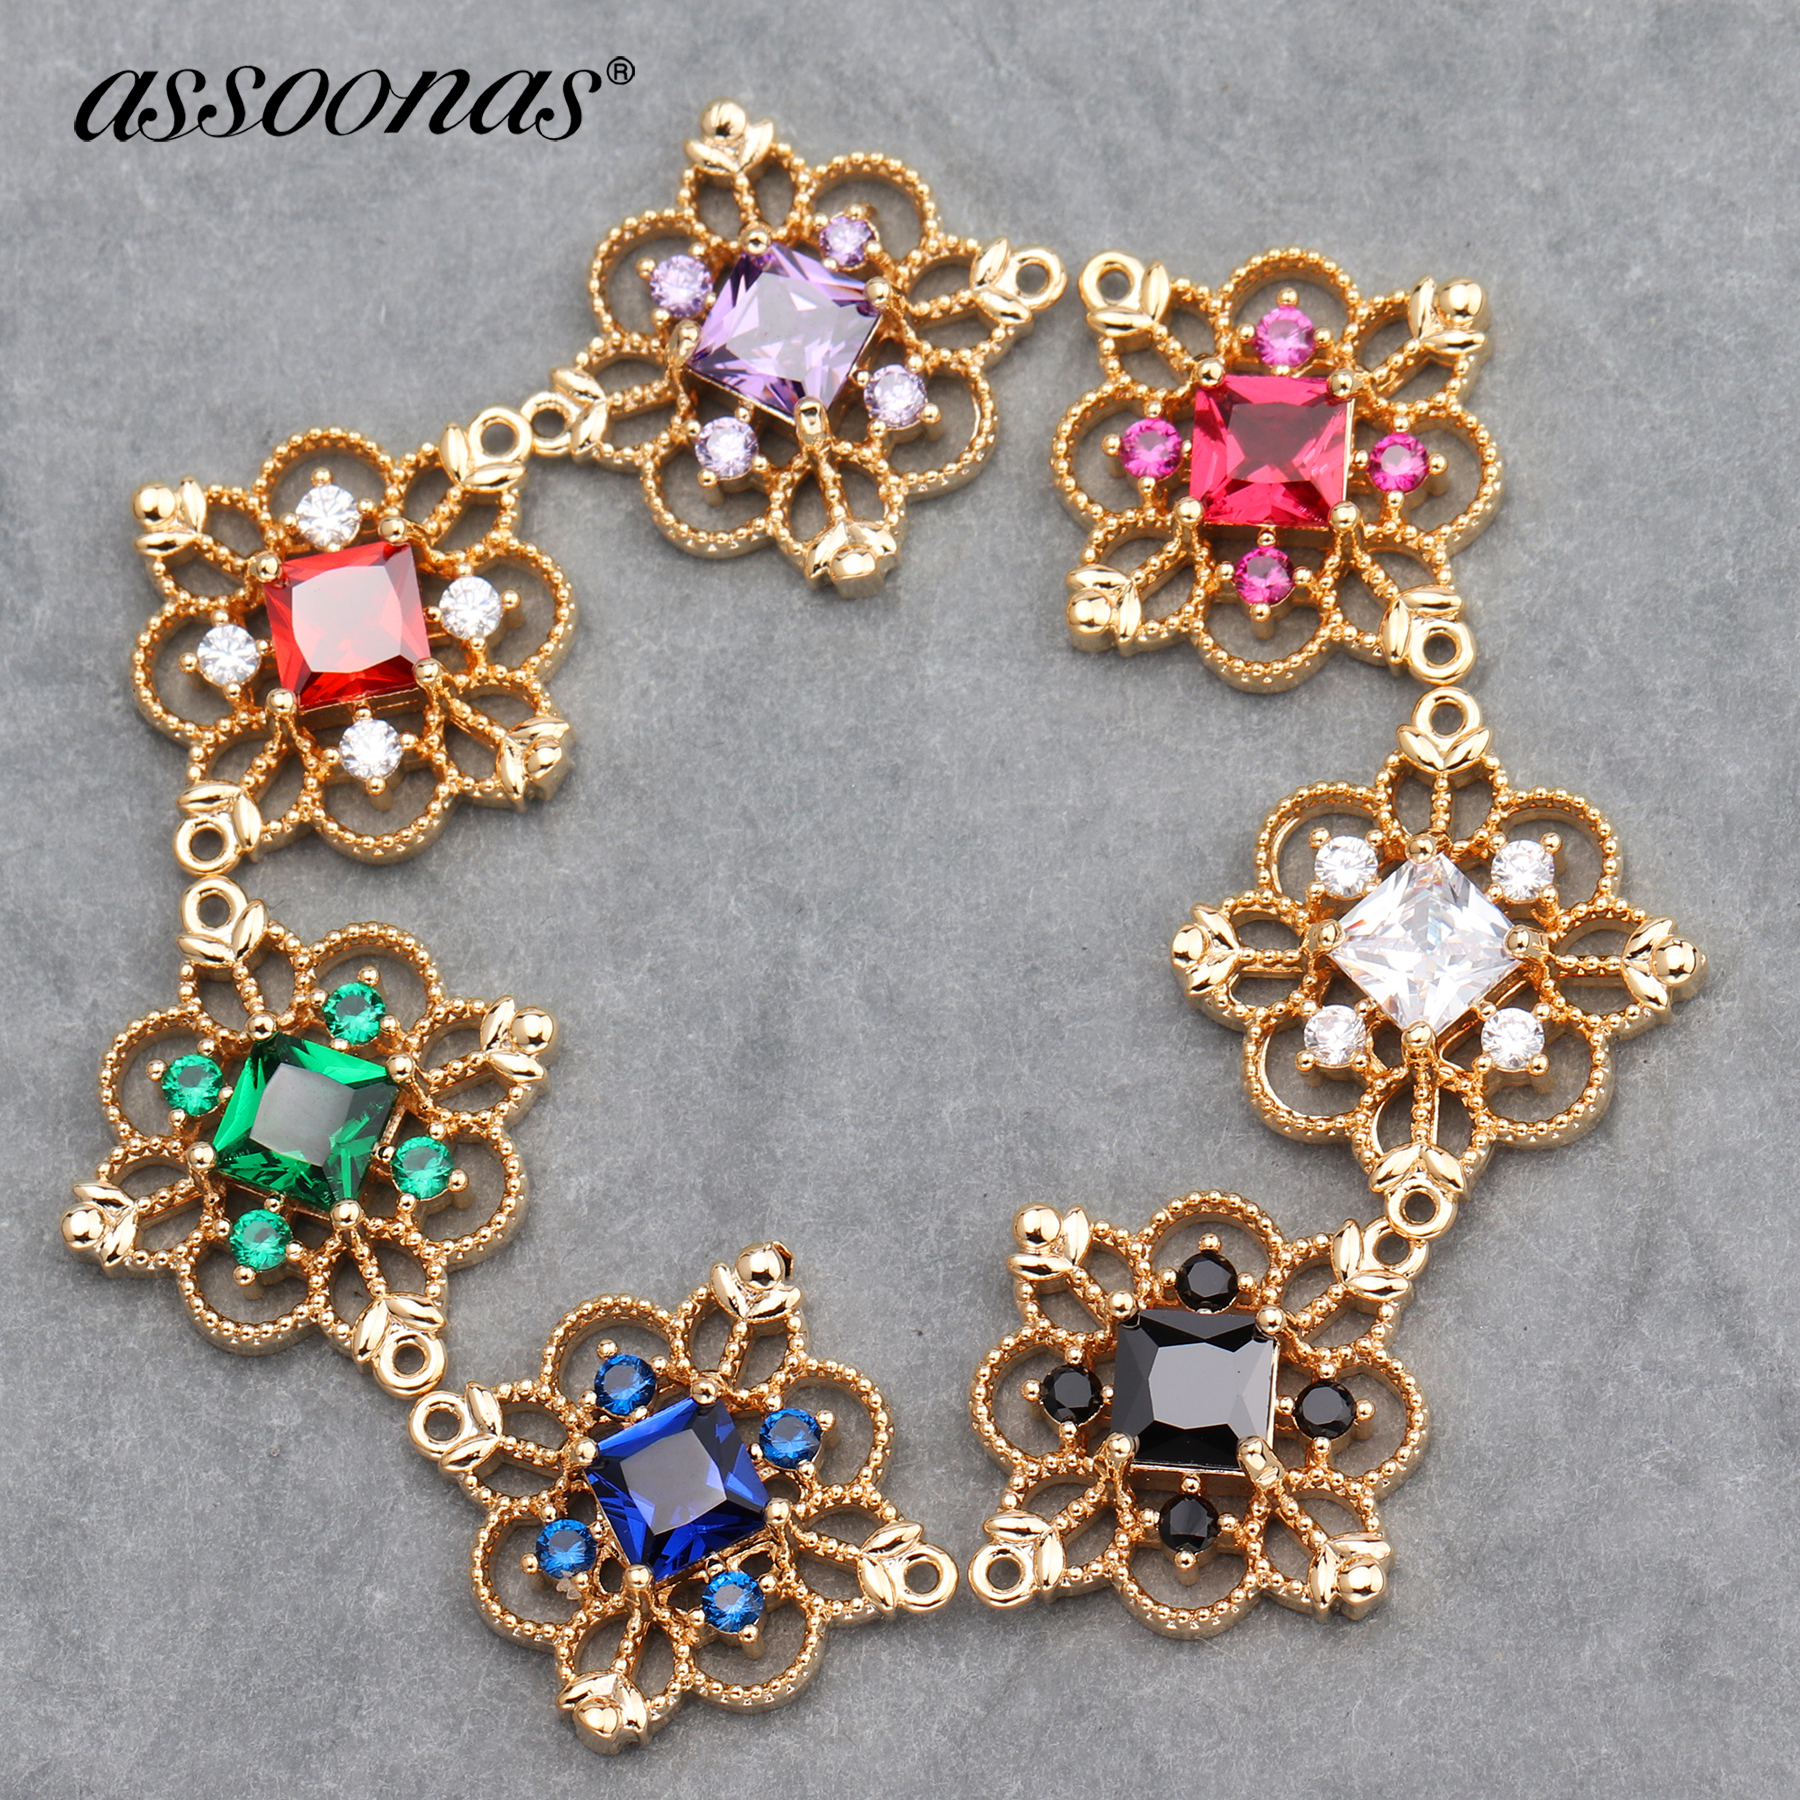 Assoonas M588,18K Gold Pendant,jewelry Accessories,Zircon Crystal,hand Made,jewelry Making,jewelry Finding,diy Earrings,6pcs/lot